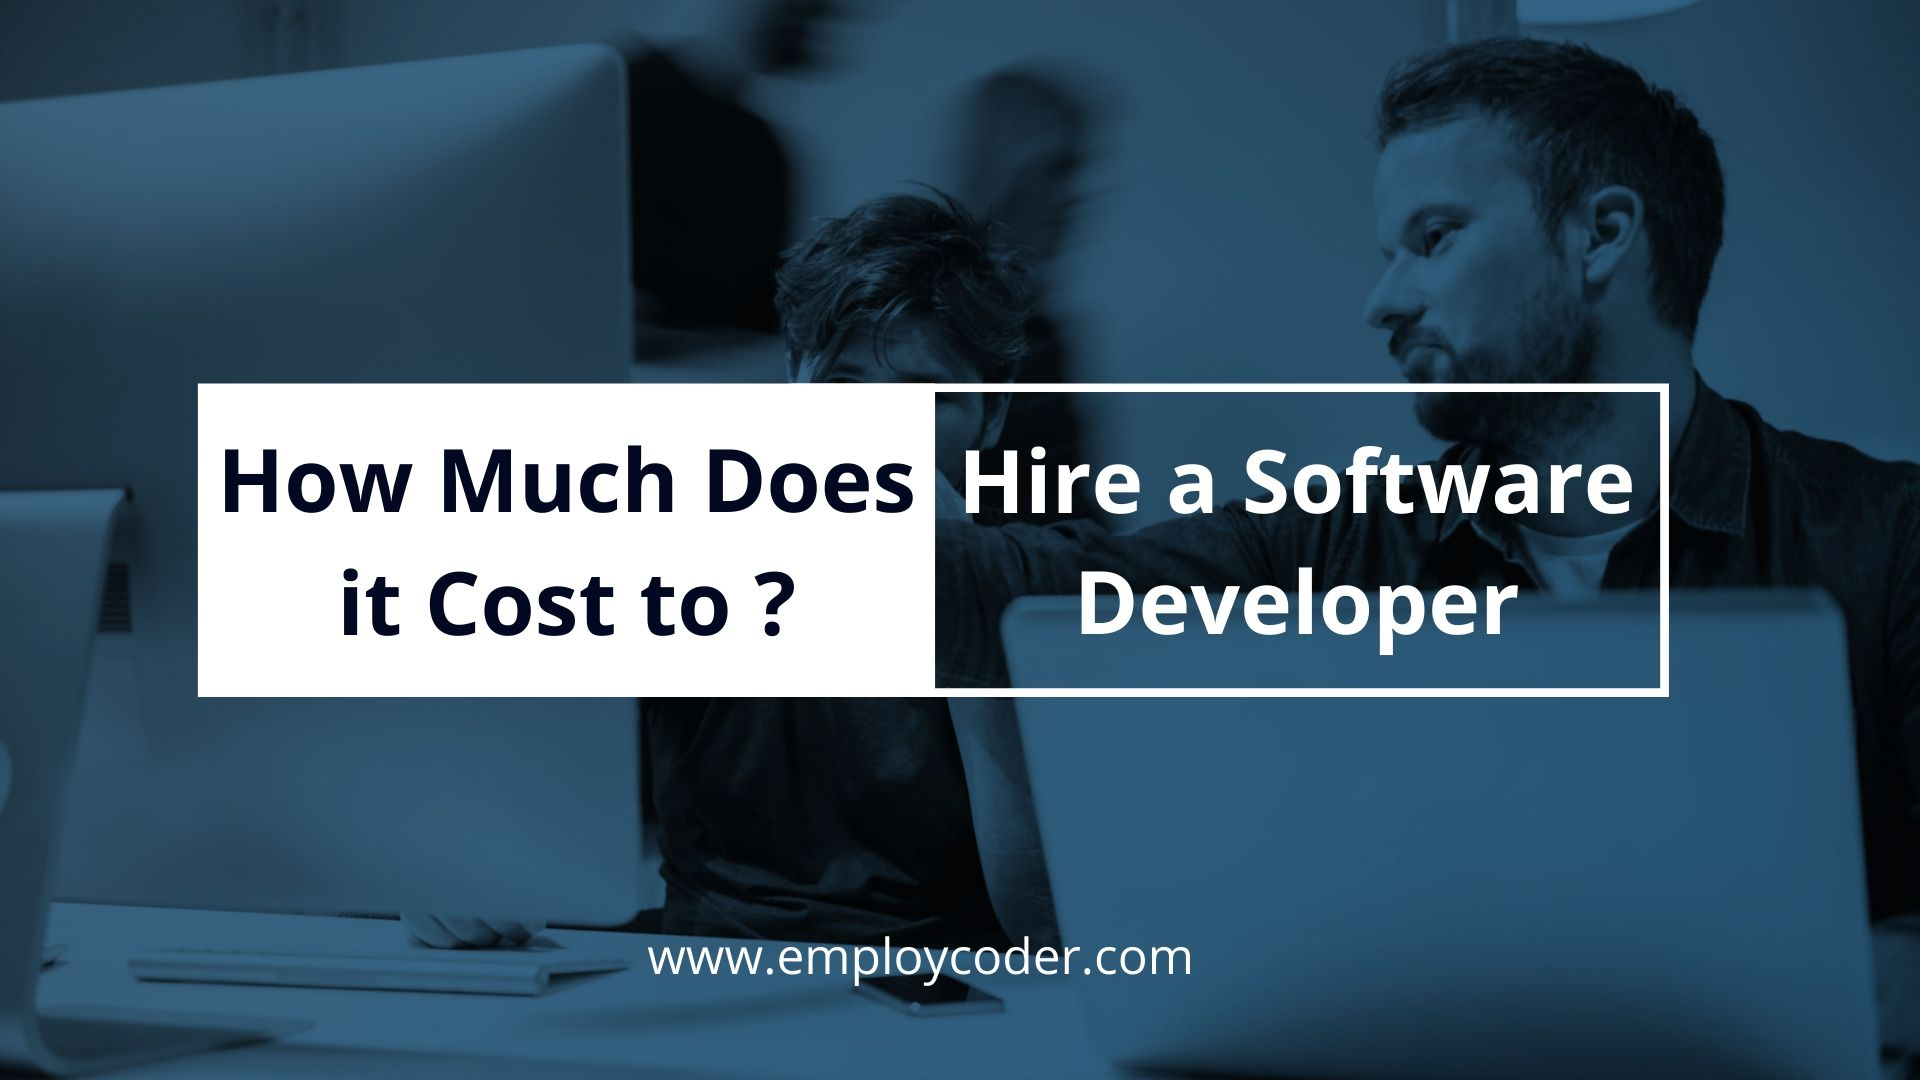 How Much Does it Cost to Hire a Software Developer?